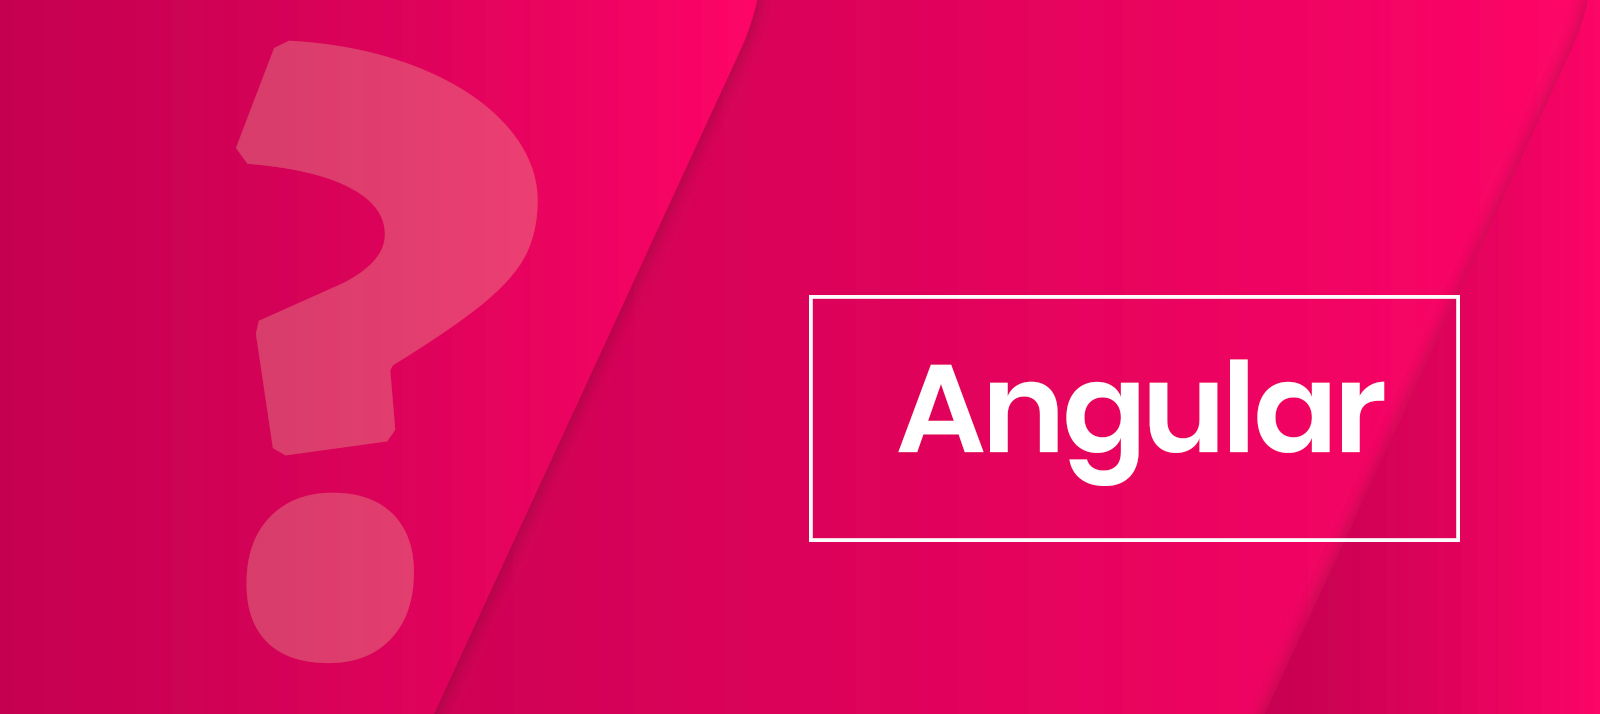 When And Why Angular Is The Best Choice For You